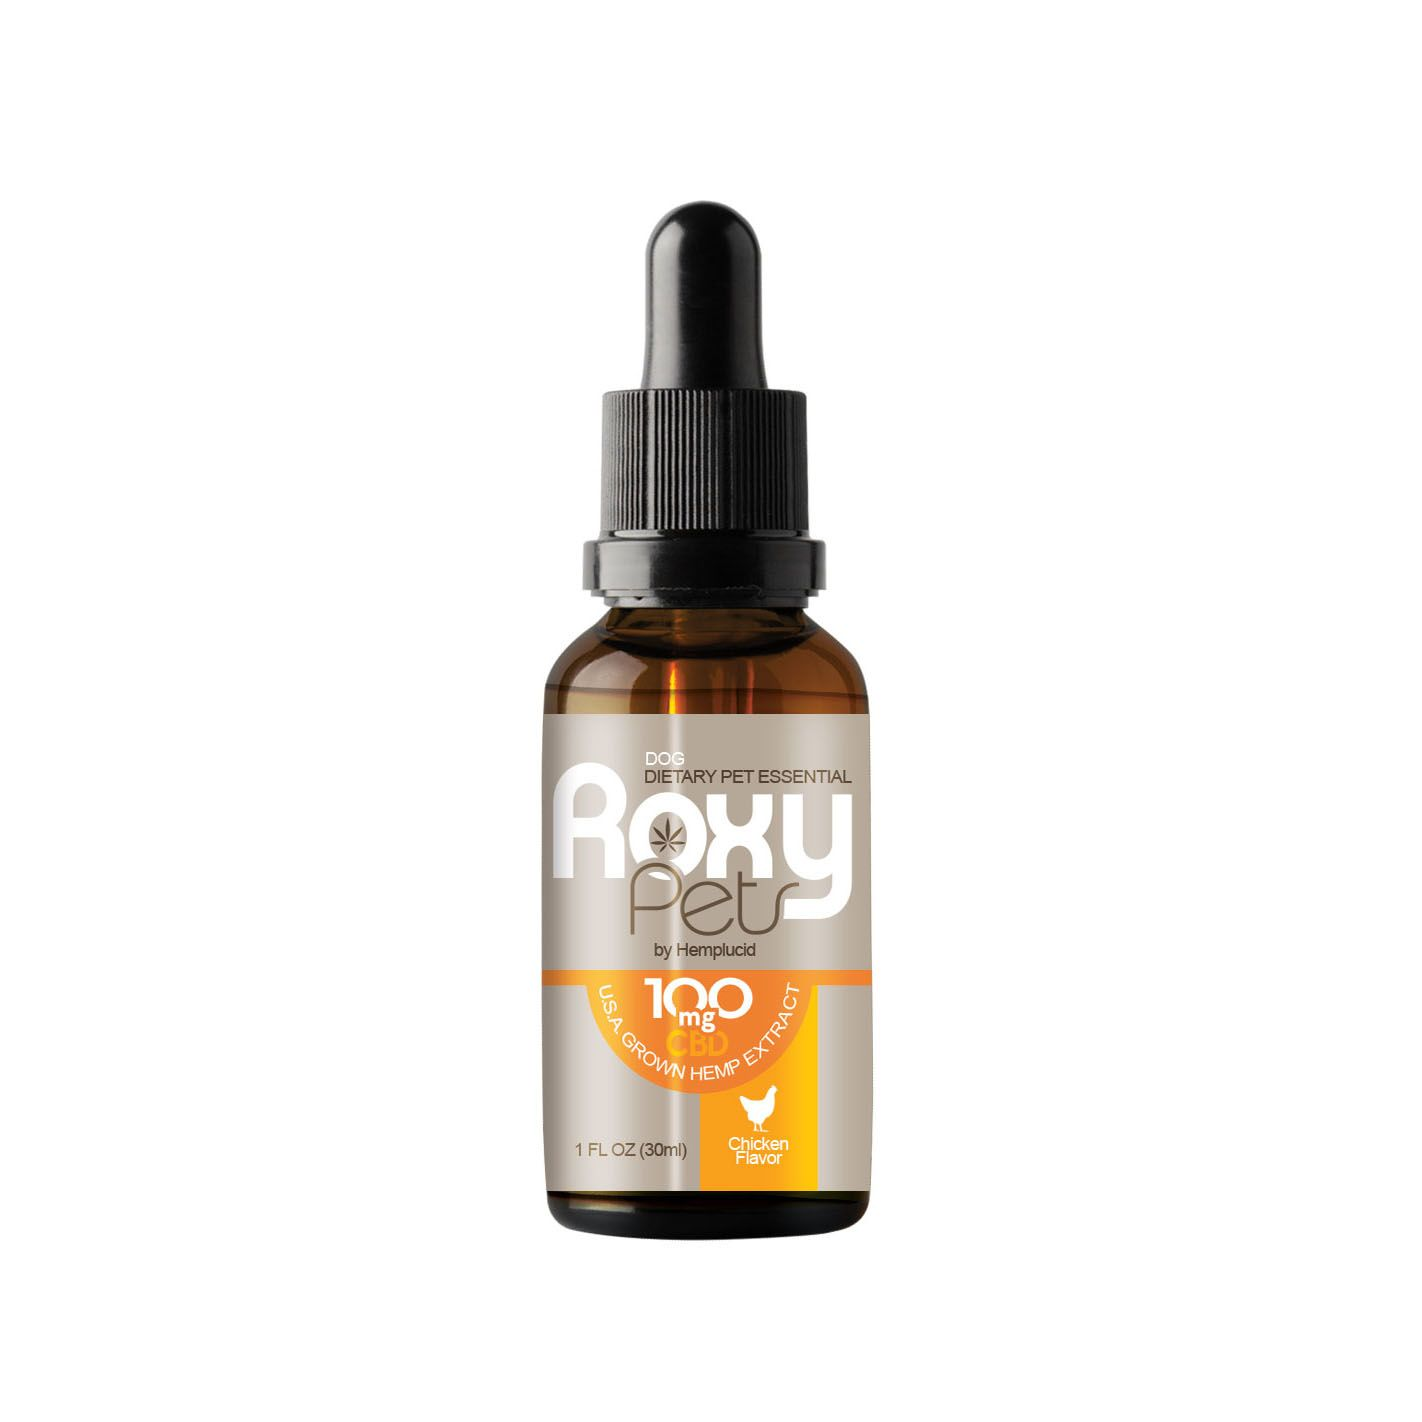 Roxy Pets CBD Oil Whole Plant Extract for Dogs Chicken 100 mg 1 fl. oz. (30 mL)